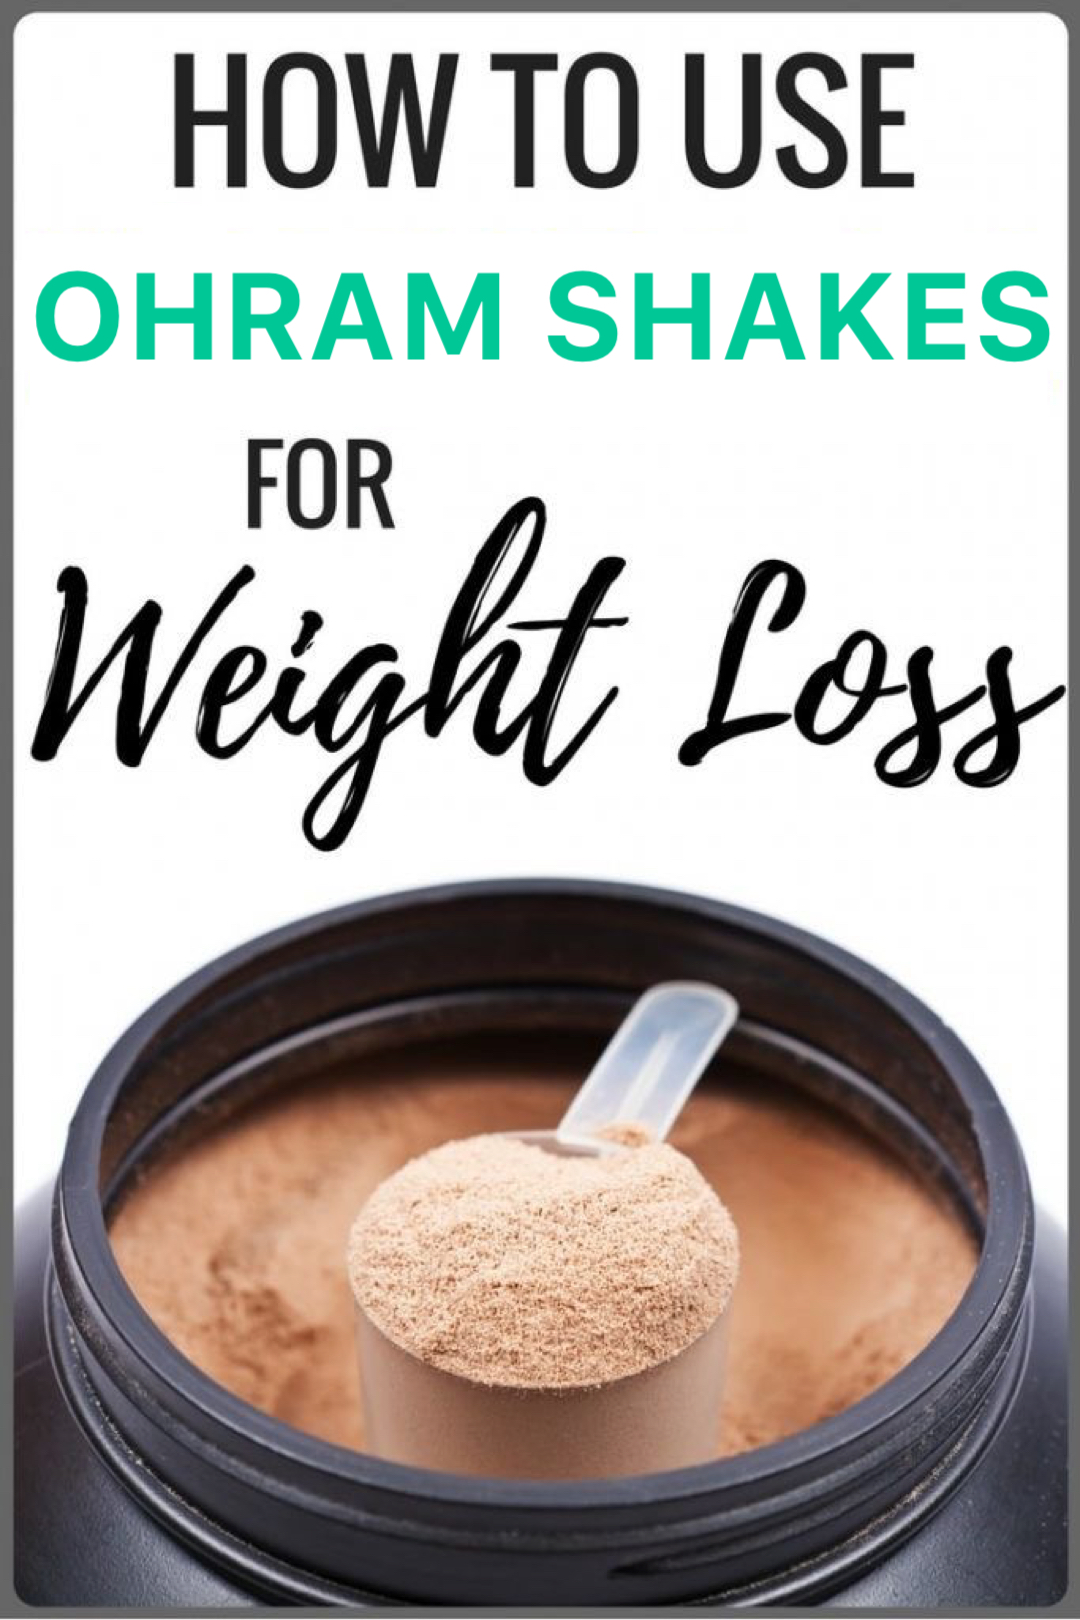 HOW TO USE OHRAM SHAKES FOR WEIGHT-LOSS